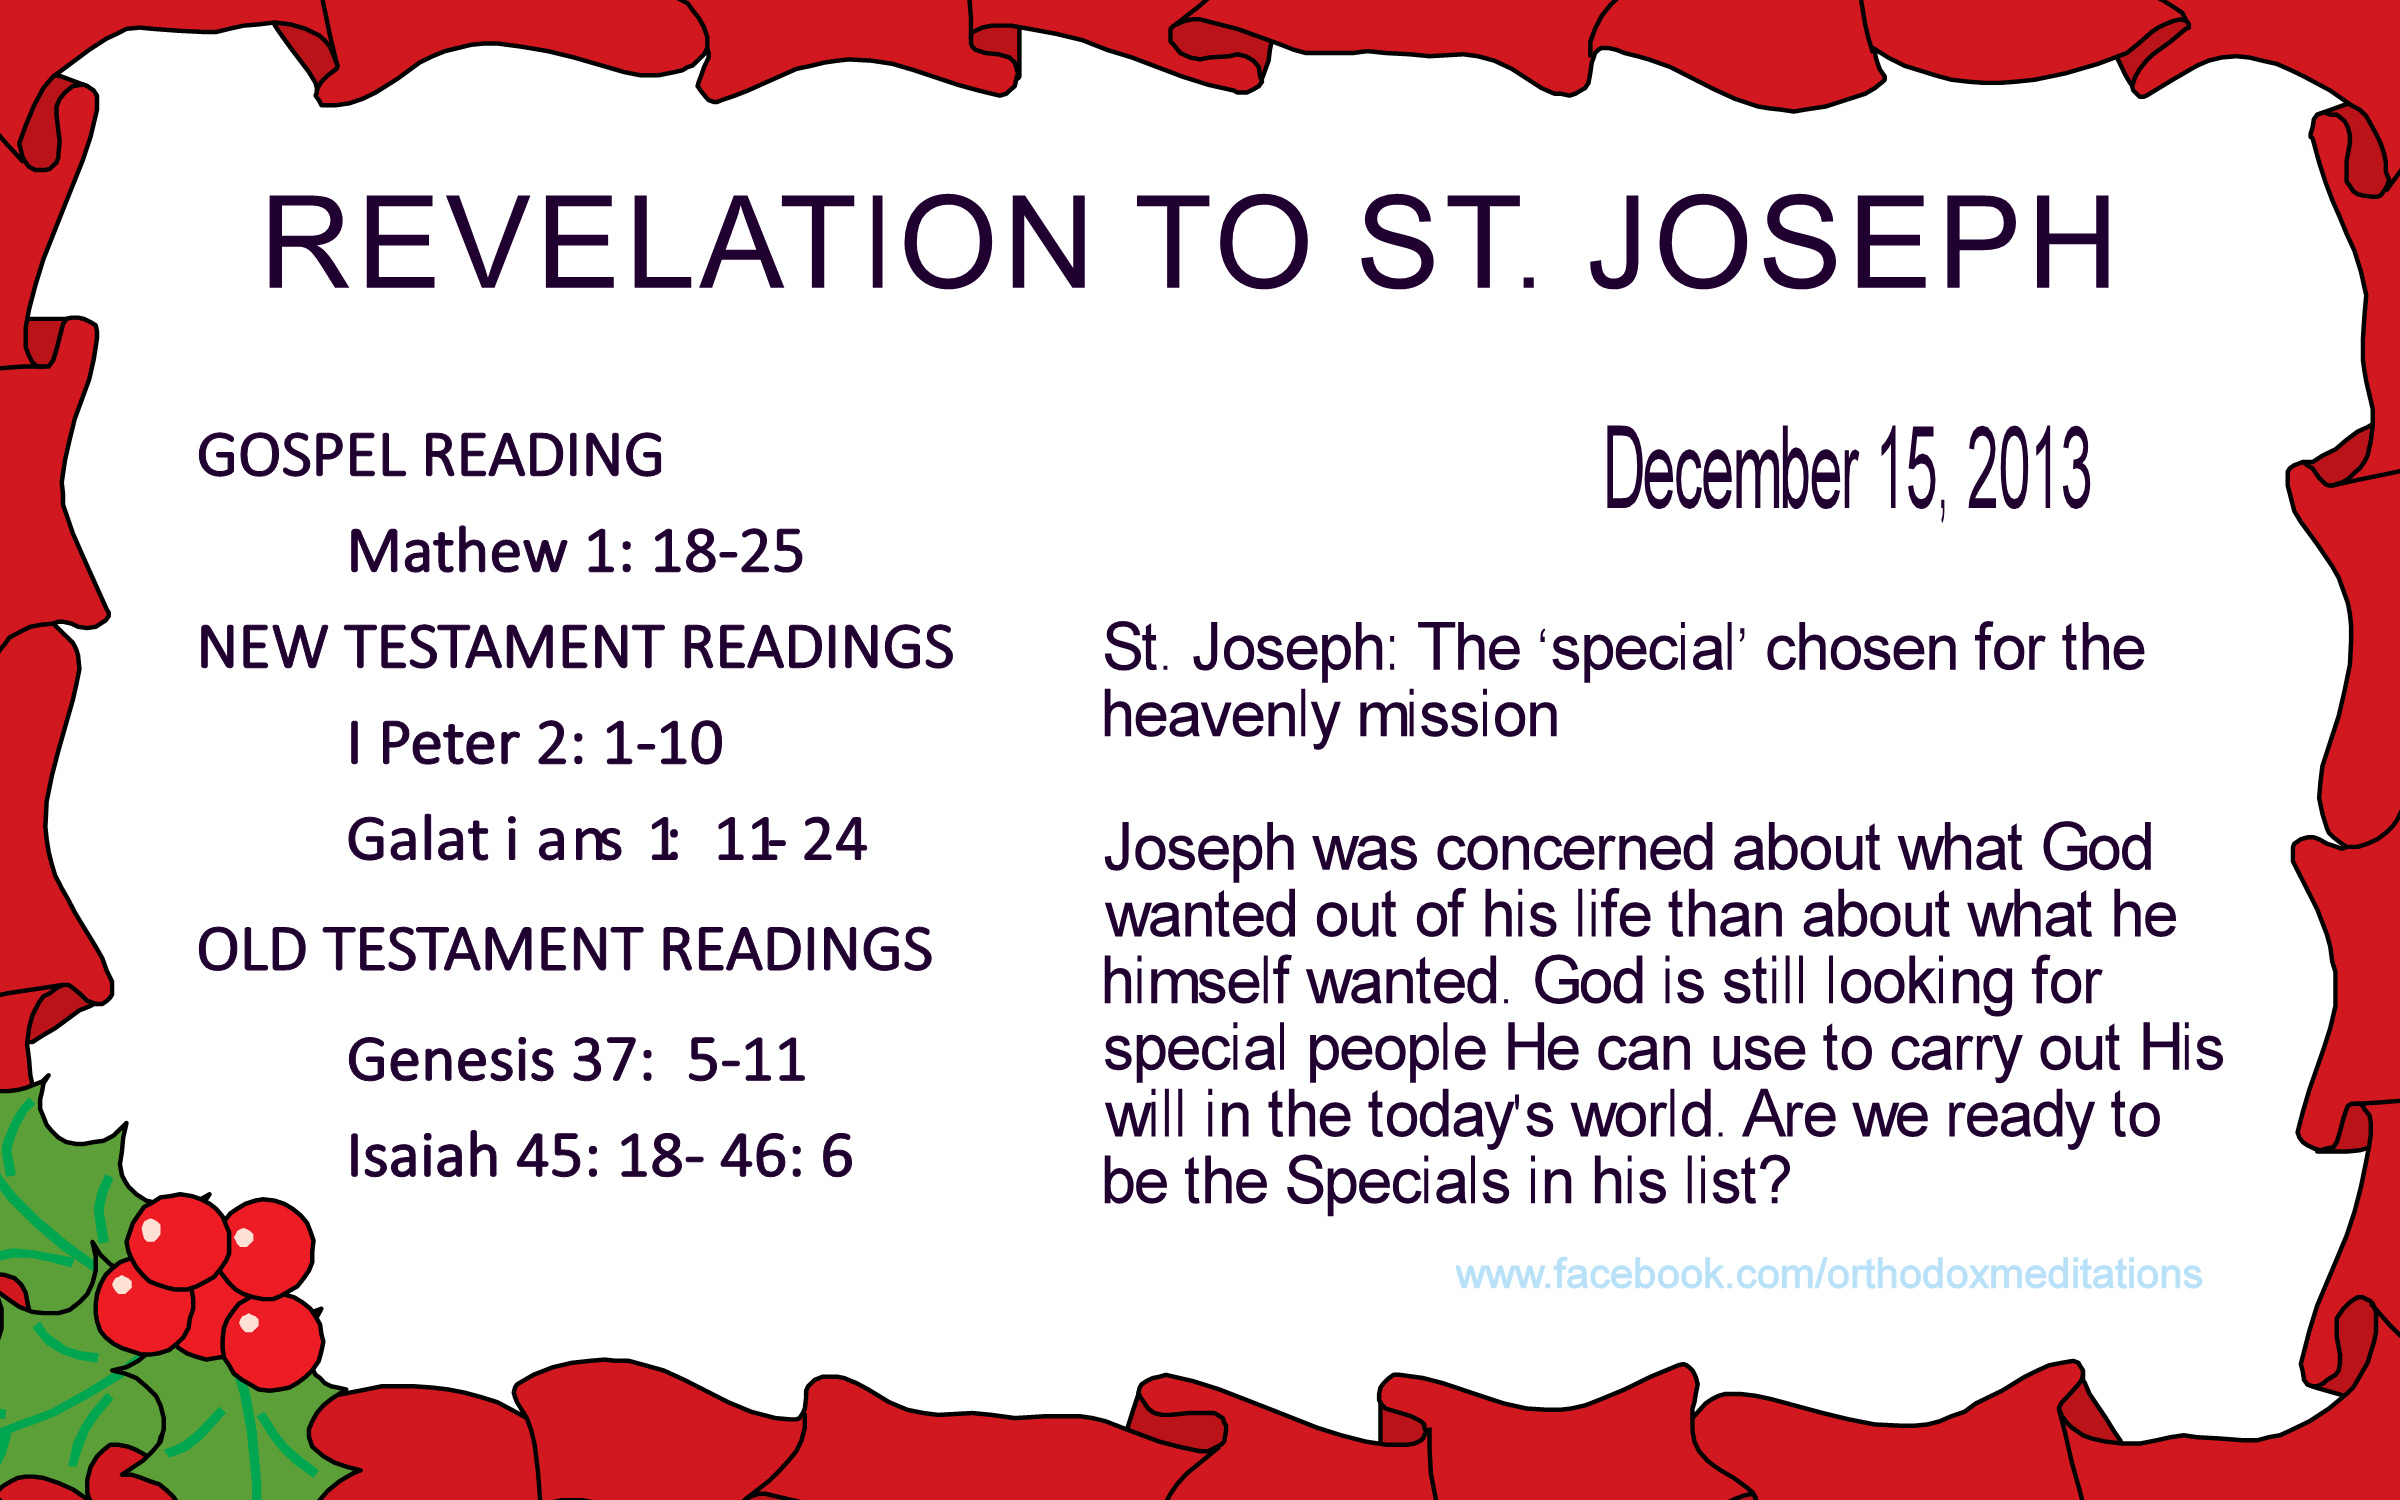 REVELATION TO ST. JOSEPH